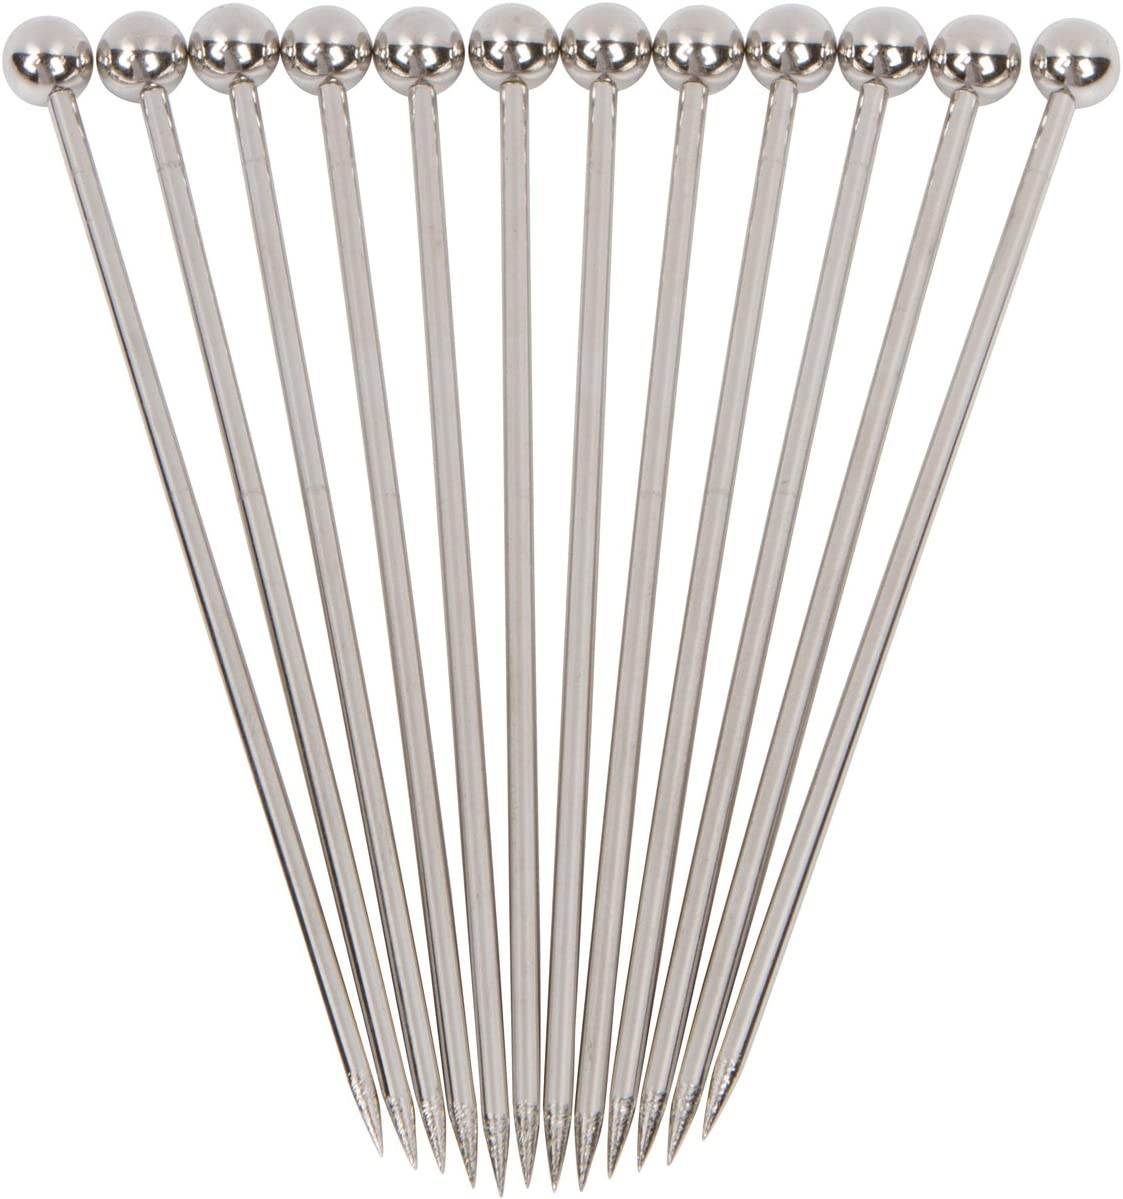 "Stainless Steel Cocktail Picks - 4"" (12pc Set) 71oUZATBopL"